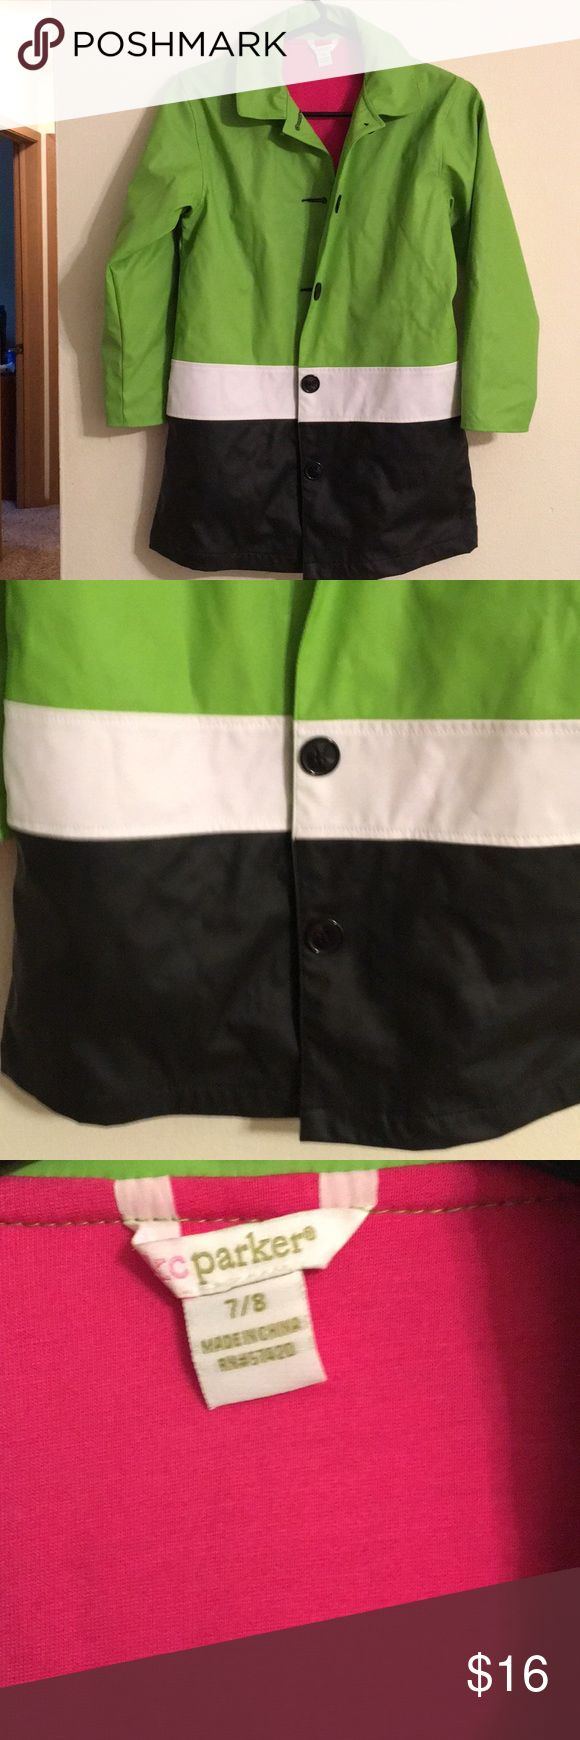 KC Parker Rain Coat Lined in pink, buttons down and colors are green, blue and white. KC Parker Jackets & Coats Raincoats